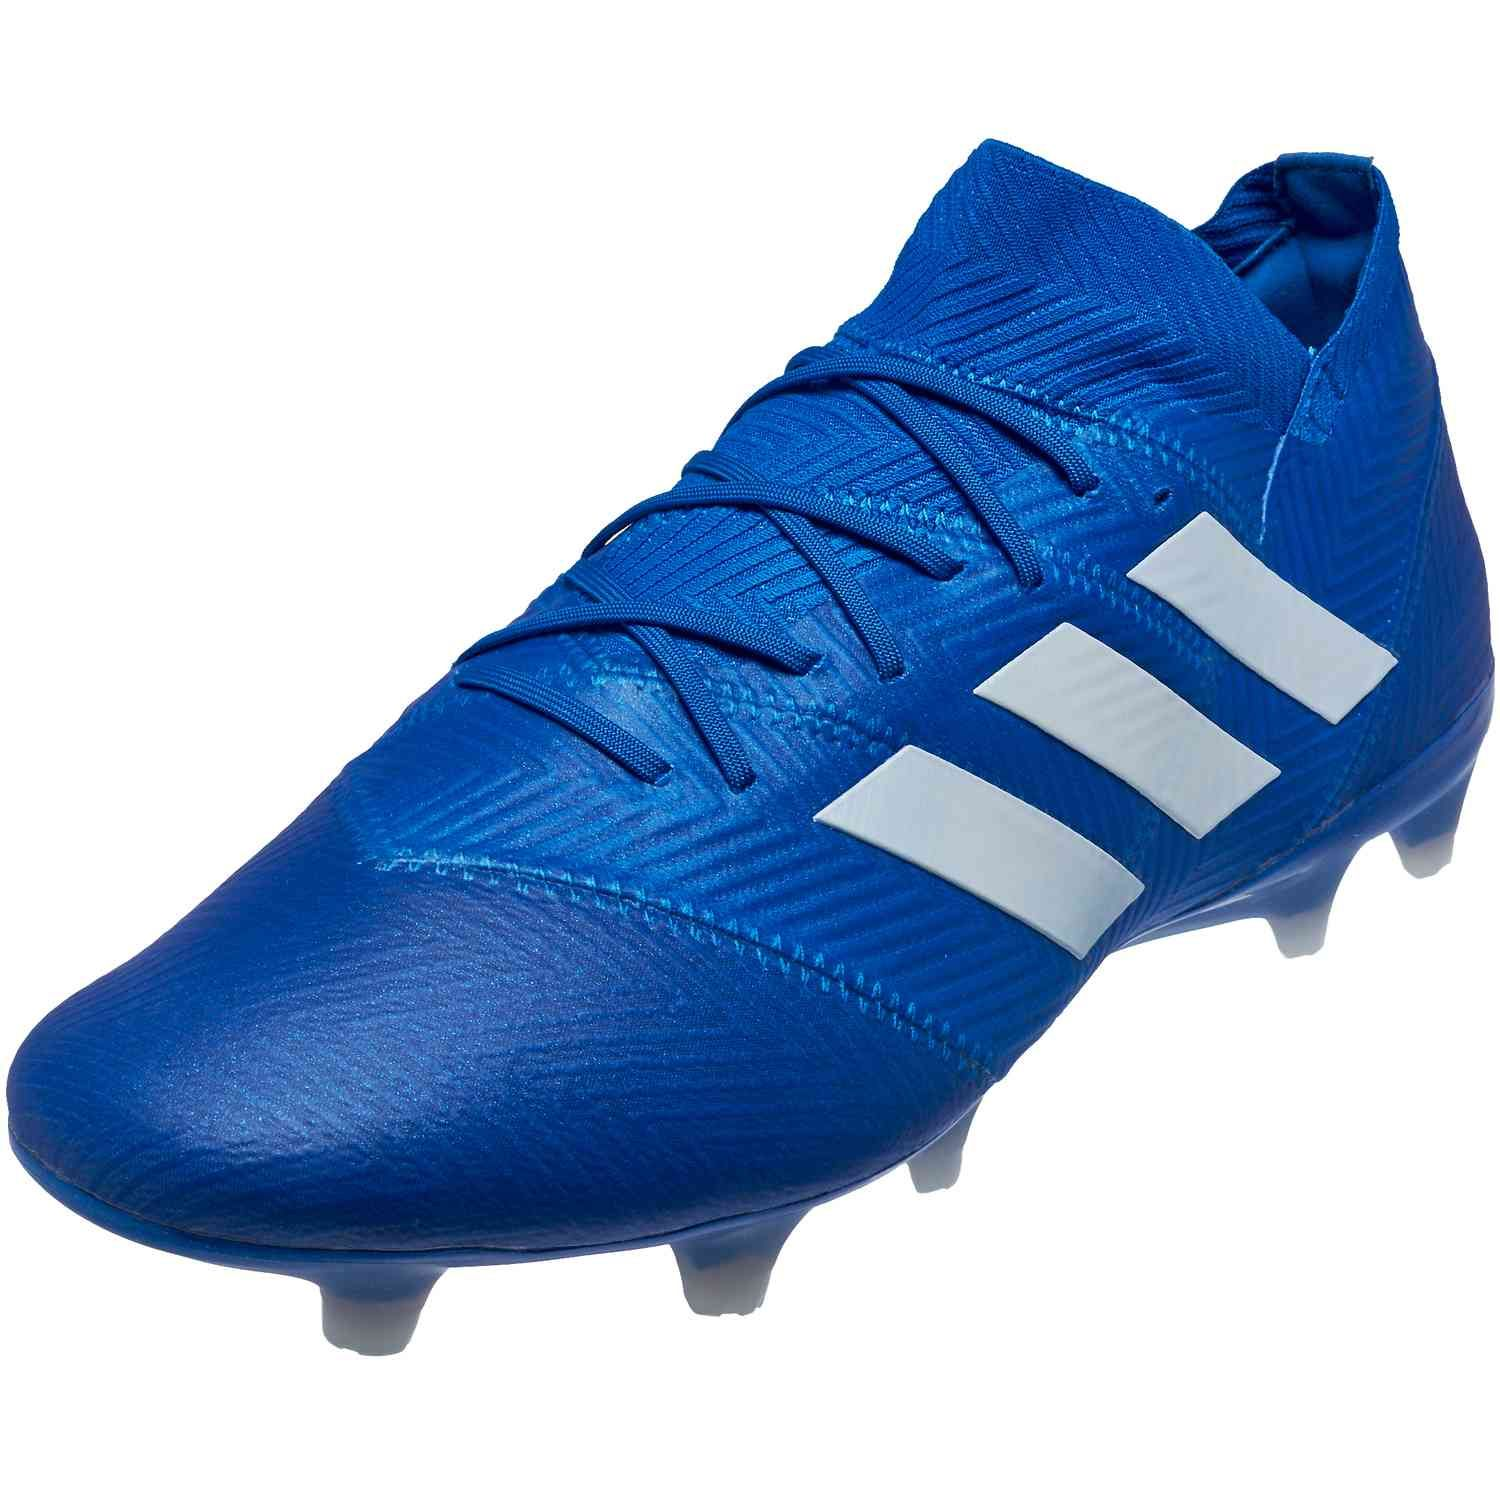 White And Blue Adidas Soccer Cleats